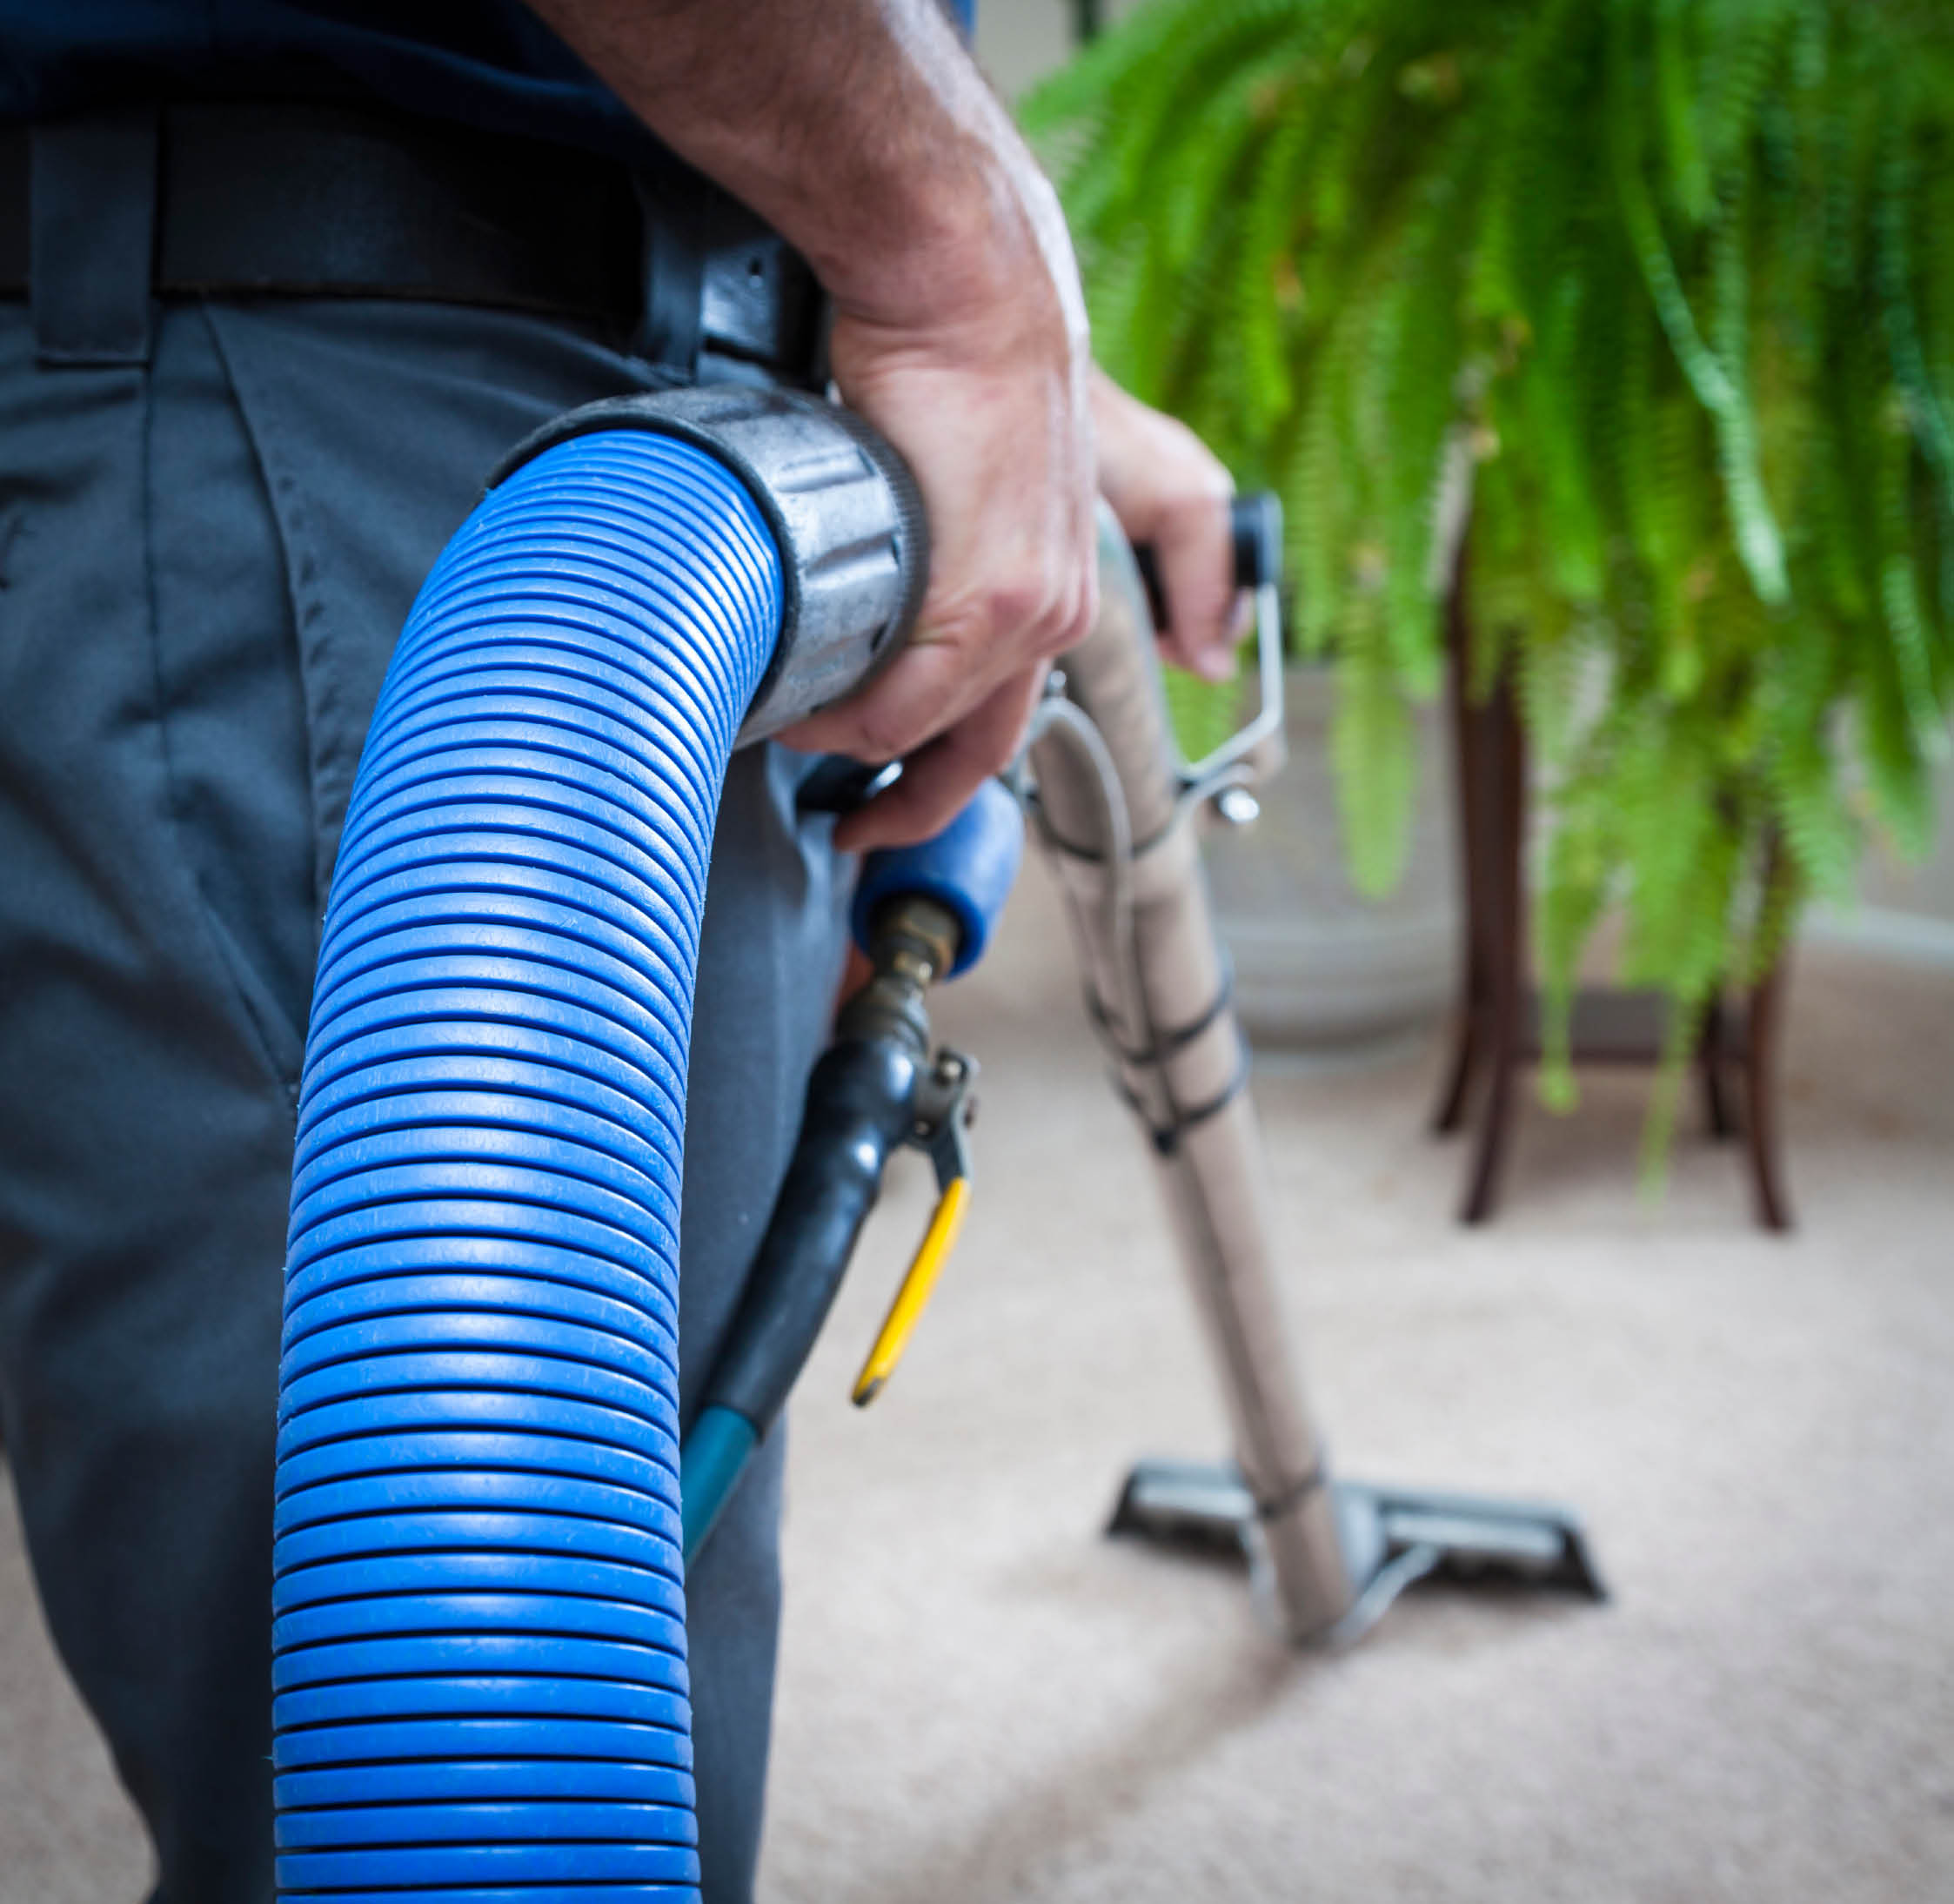 Alpine performs carpet cleaning, as well as upholstery and air-duct cleaning